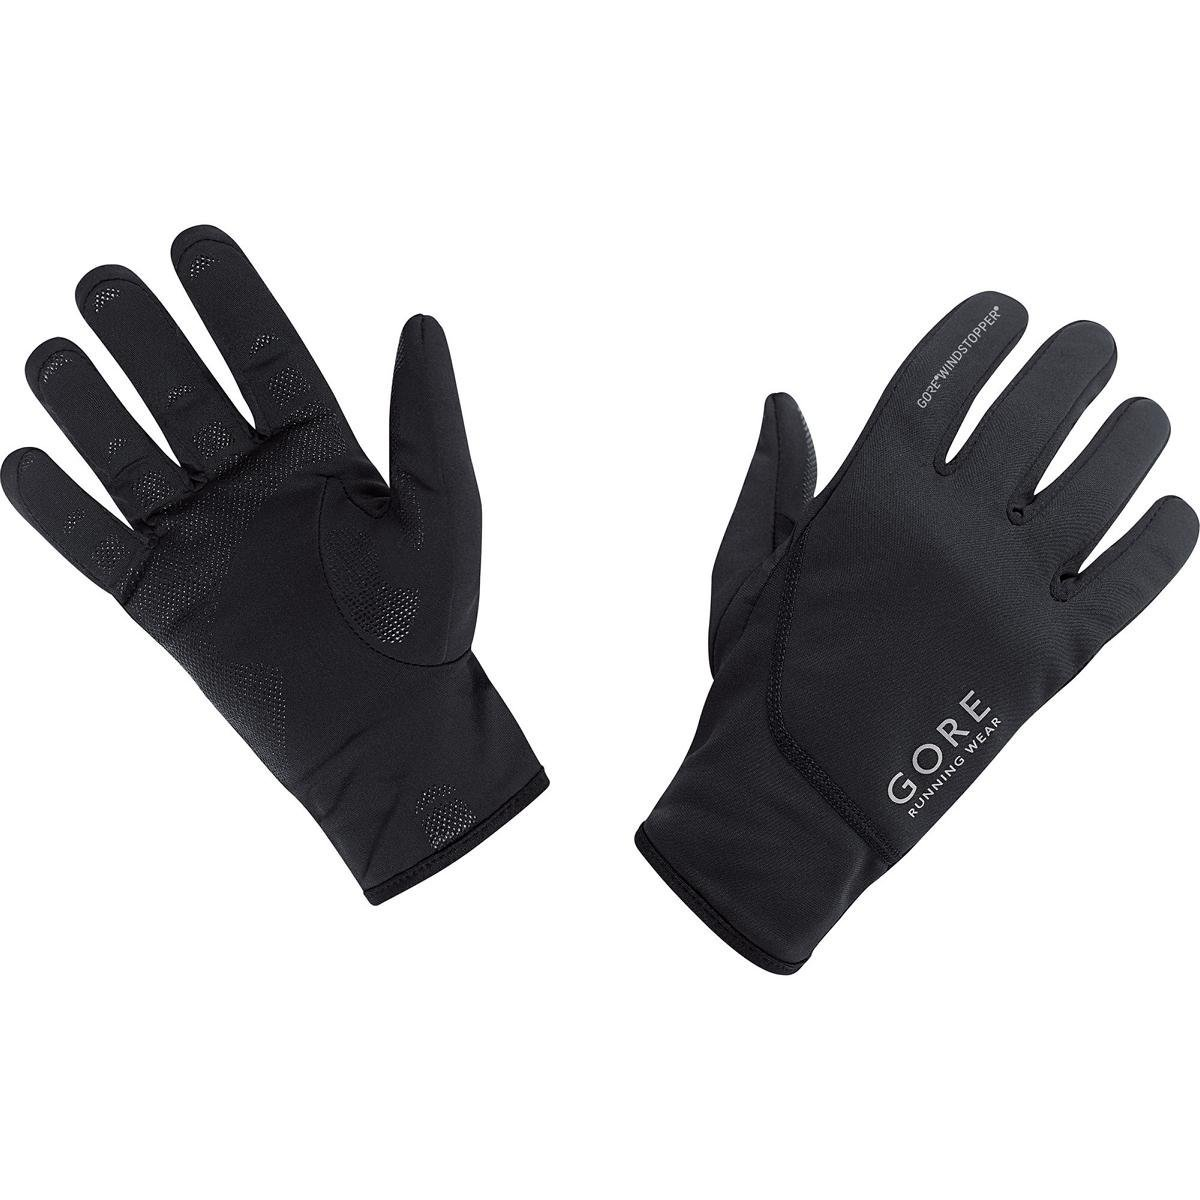 Gore Essential SO Running Gloves - AW16 - Medium GWESSE990005